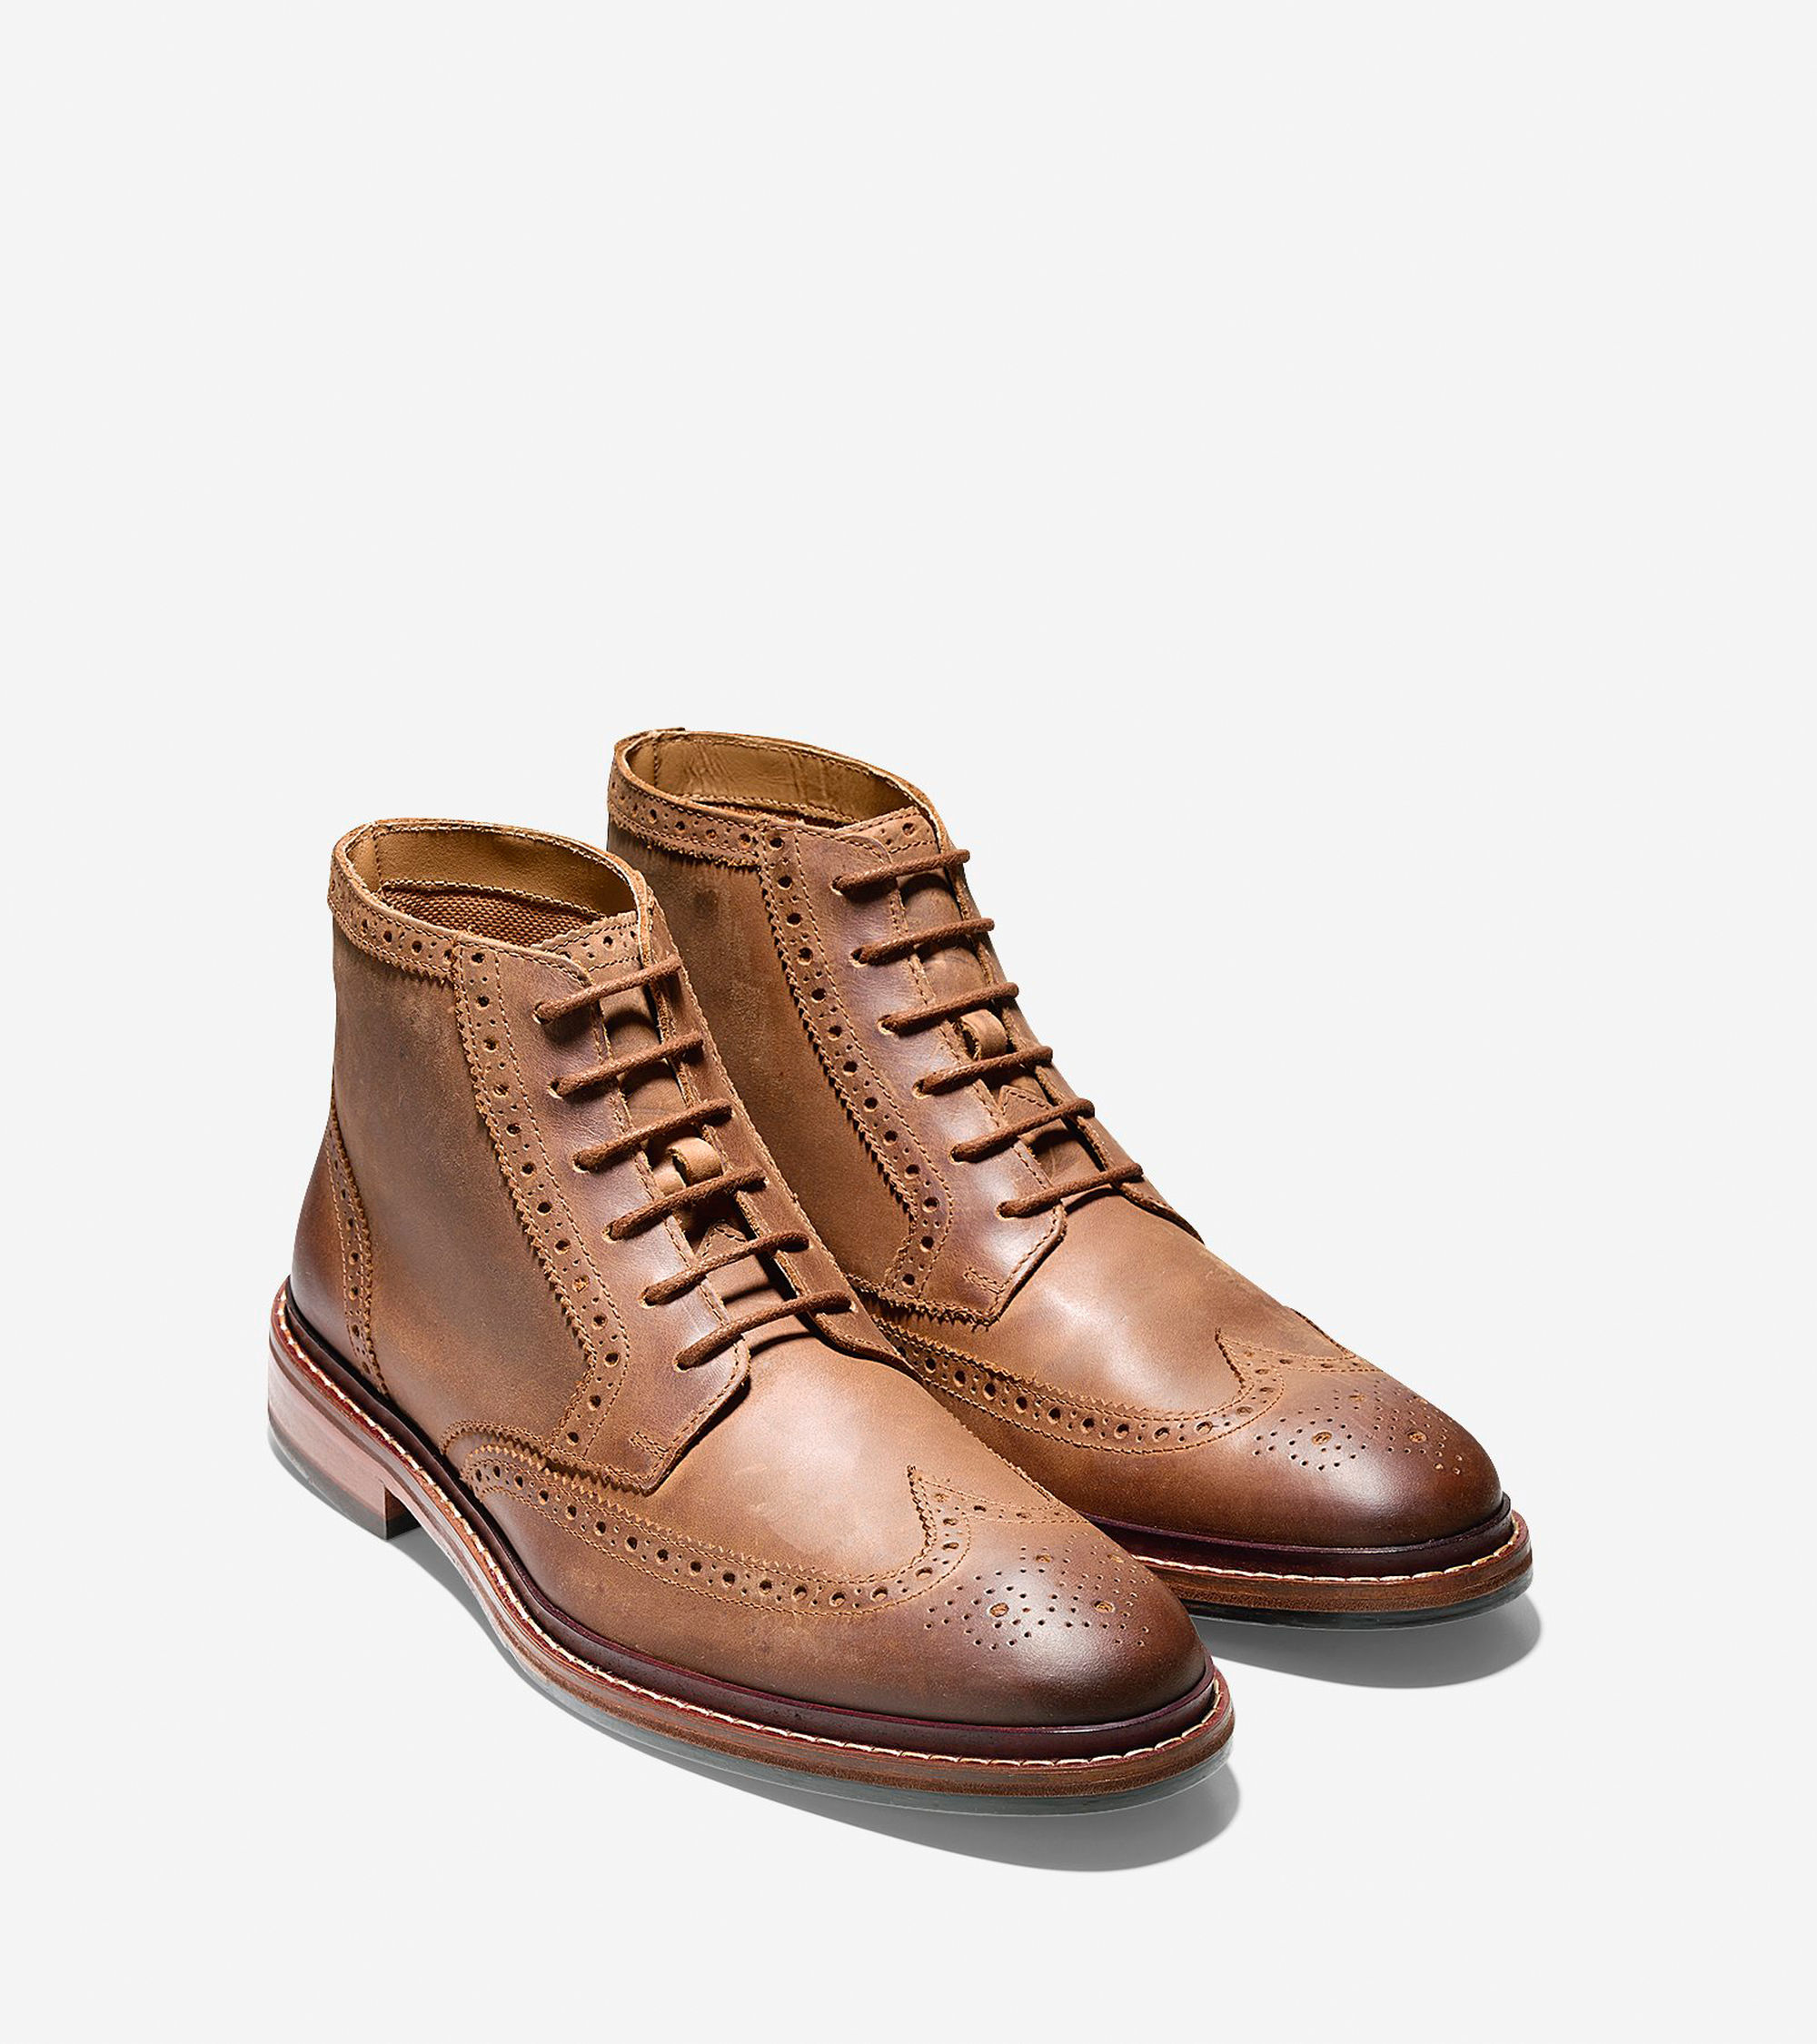 Nordstrom Cole Haan Dress Shoes